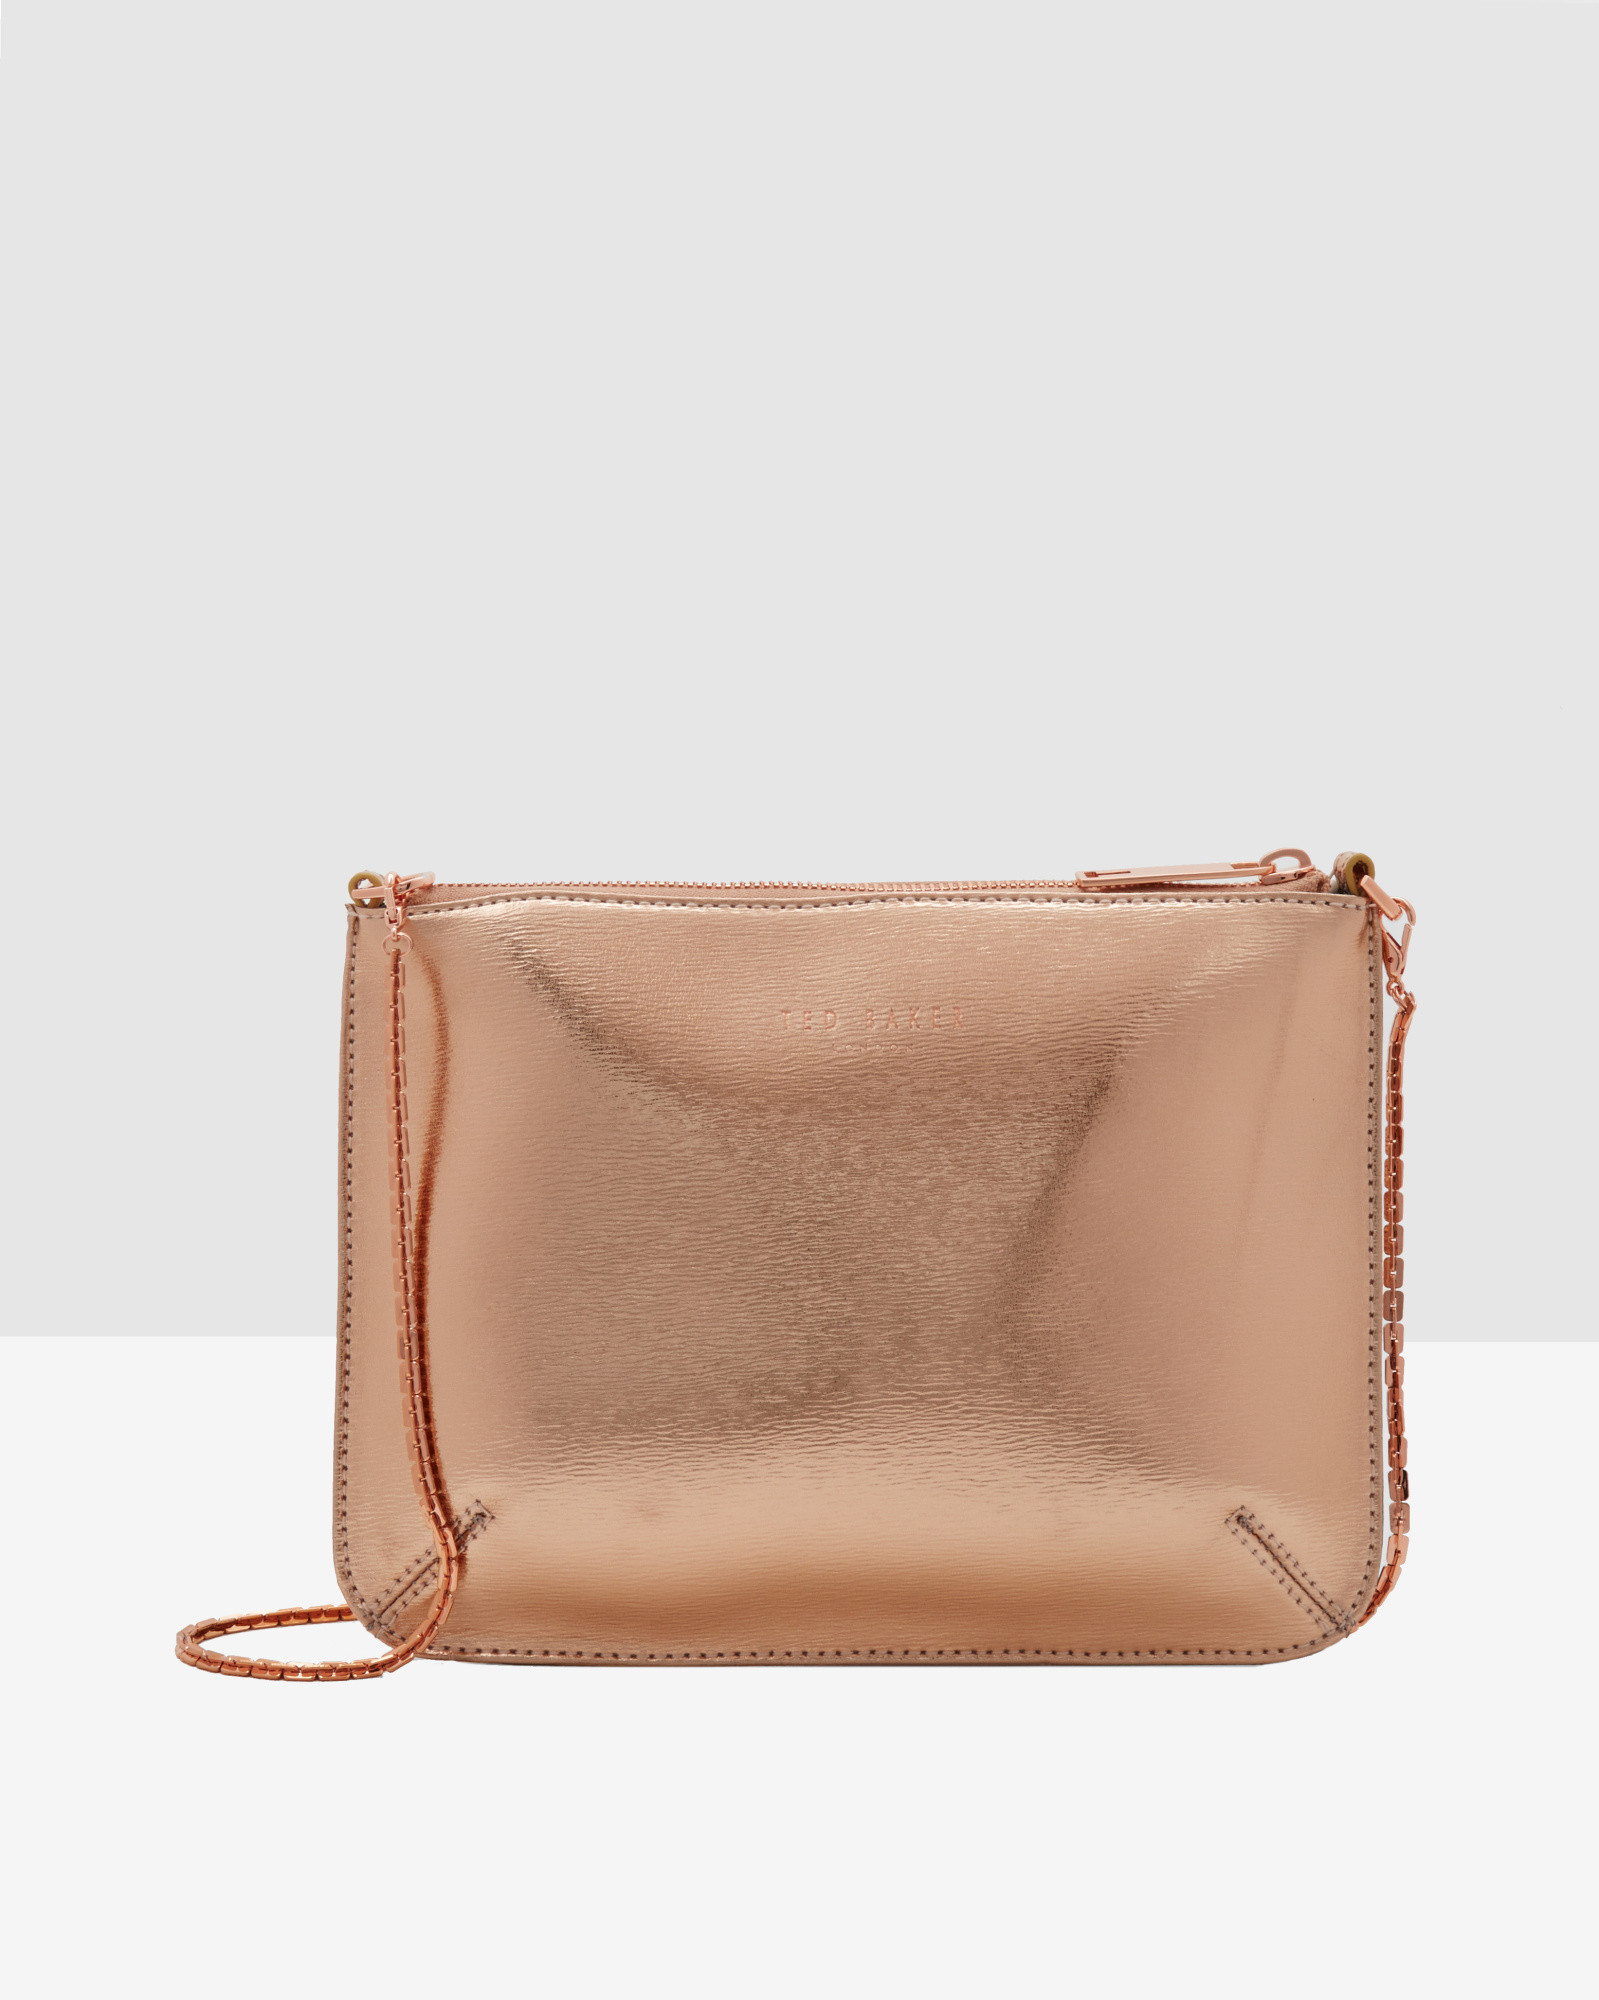 932bf76a79 Ted Baker Crosshatch Leather Clutch Bag in Pink - Lyst